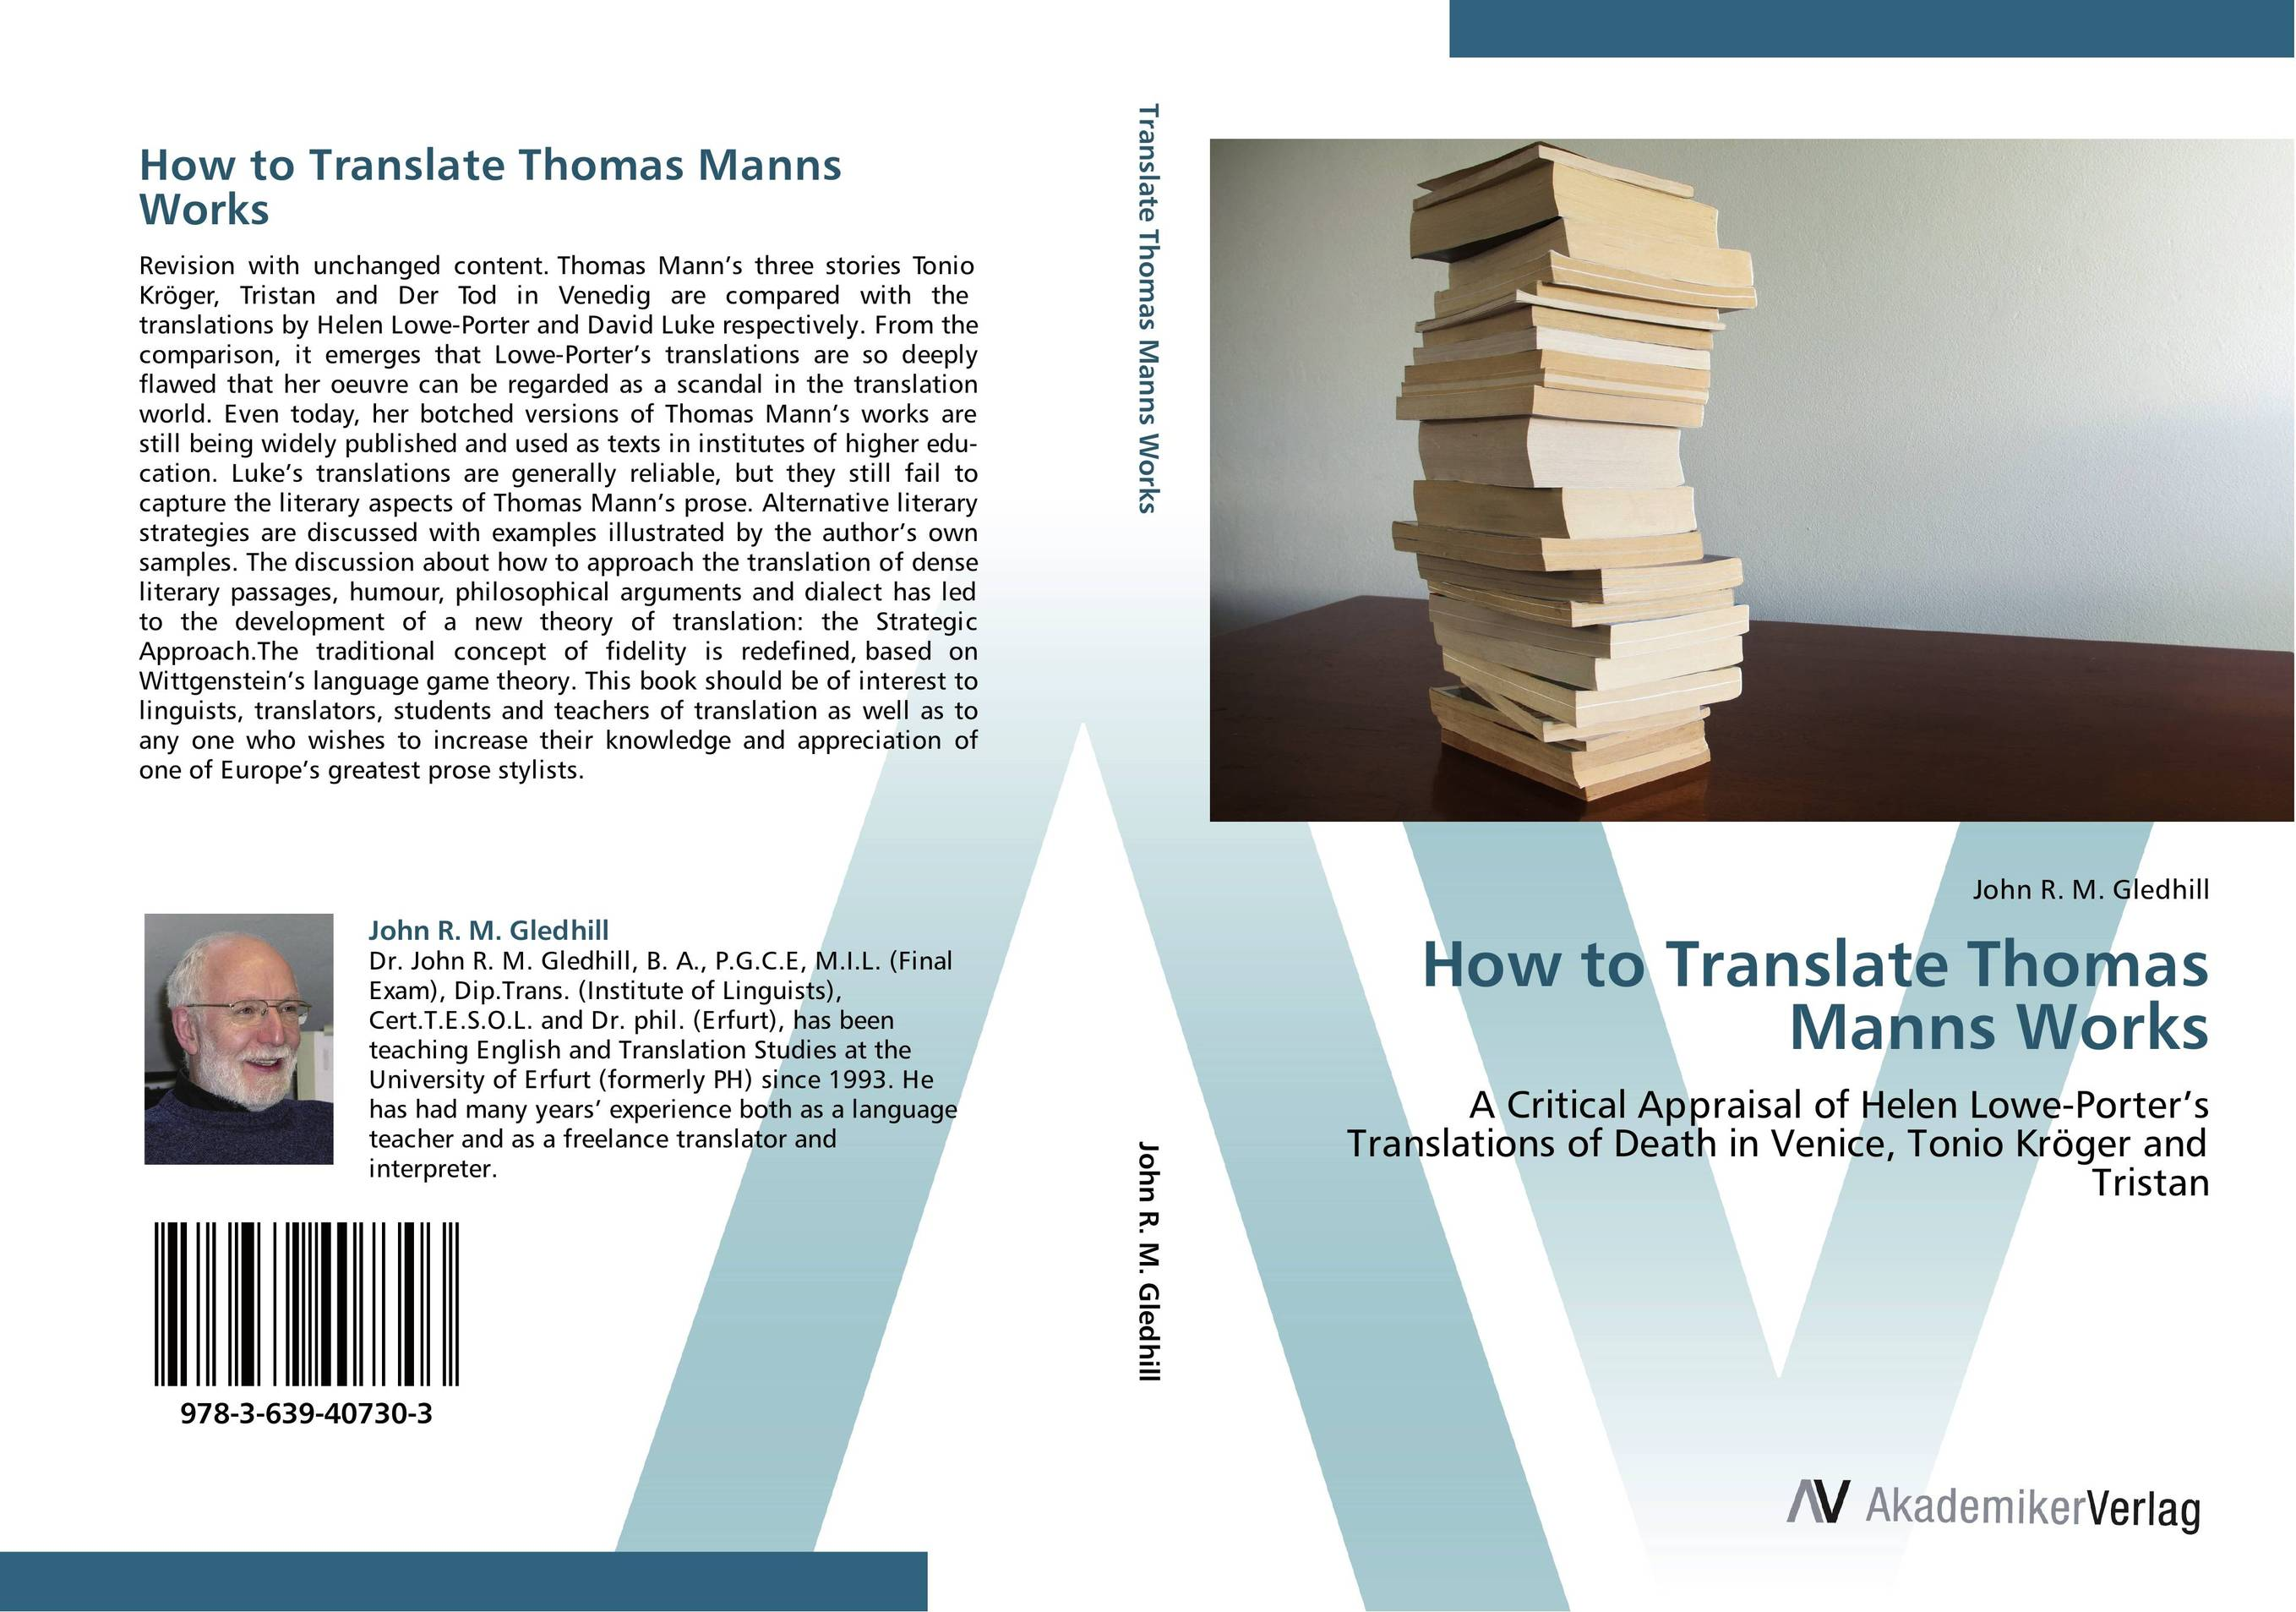 How to Translate Thomas Manns Works